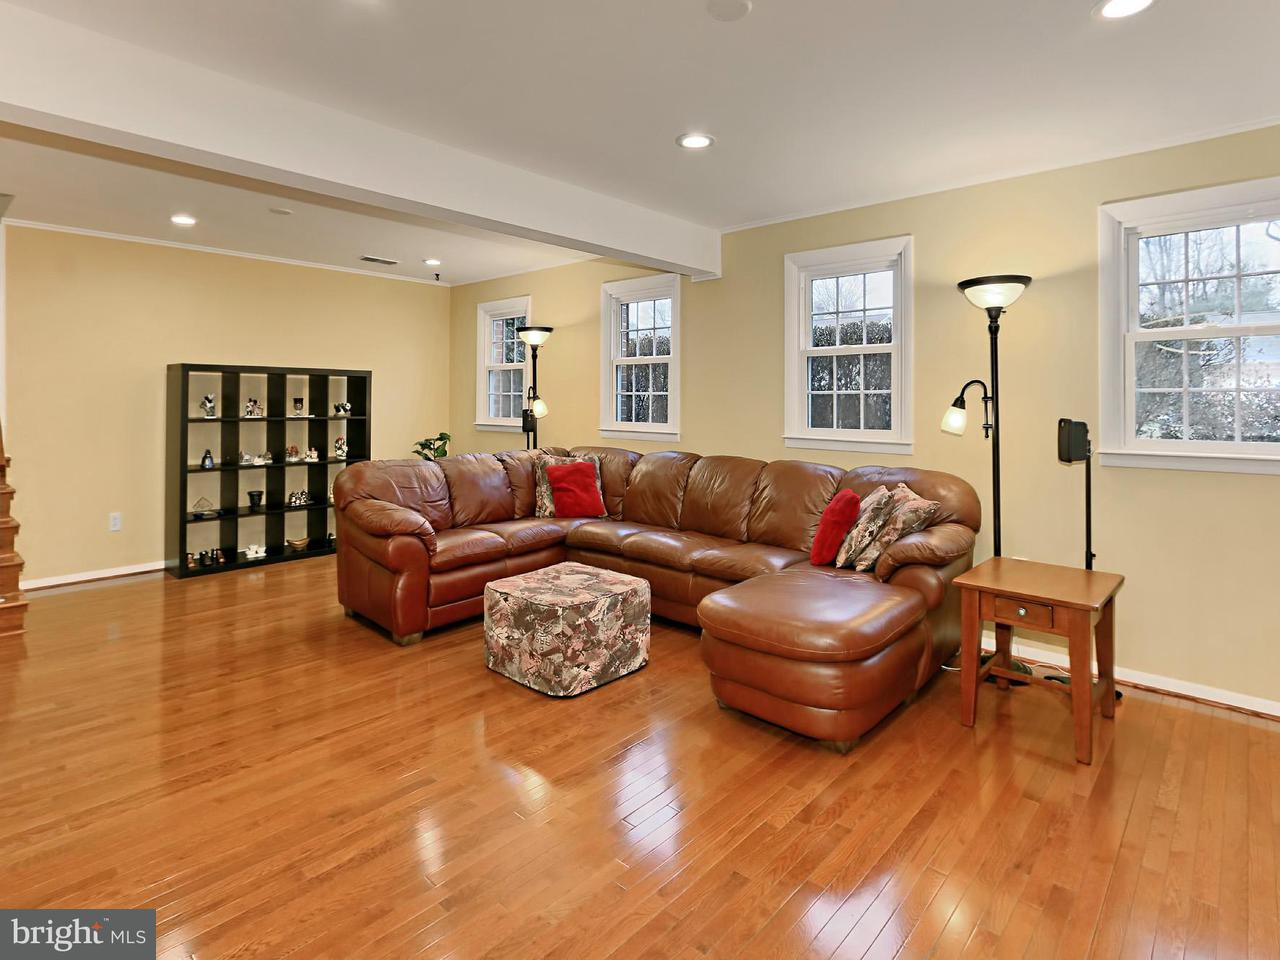 Additional photo for property listing at 4603 Demby Drive 4603 Demby Drive Fairfax, 弗吉尼亚州 22032 美国